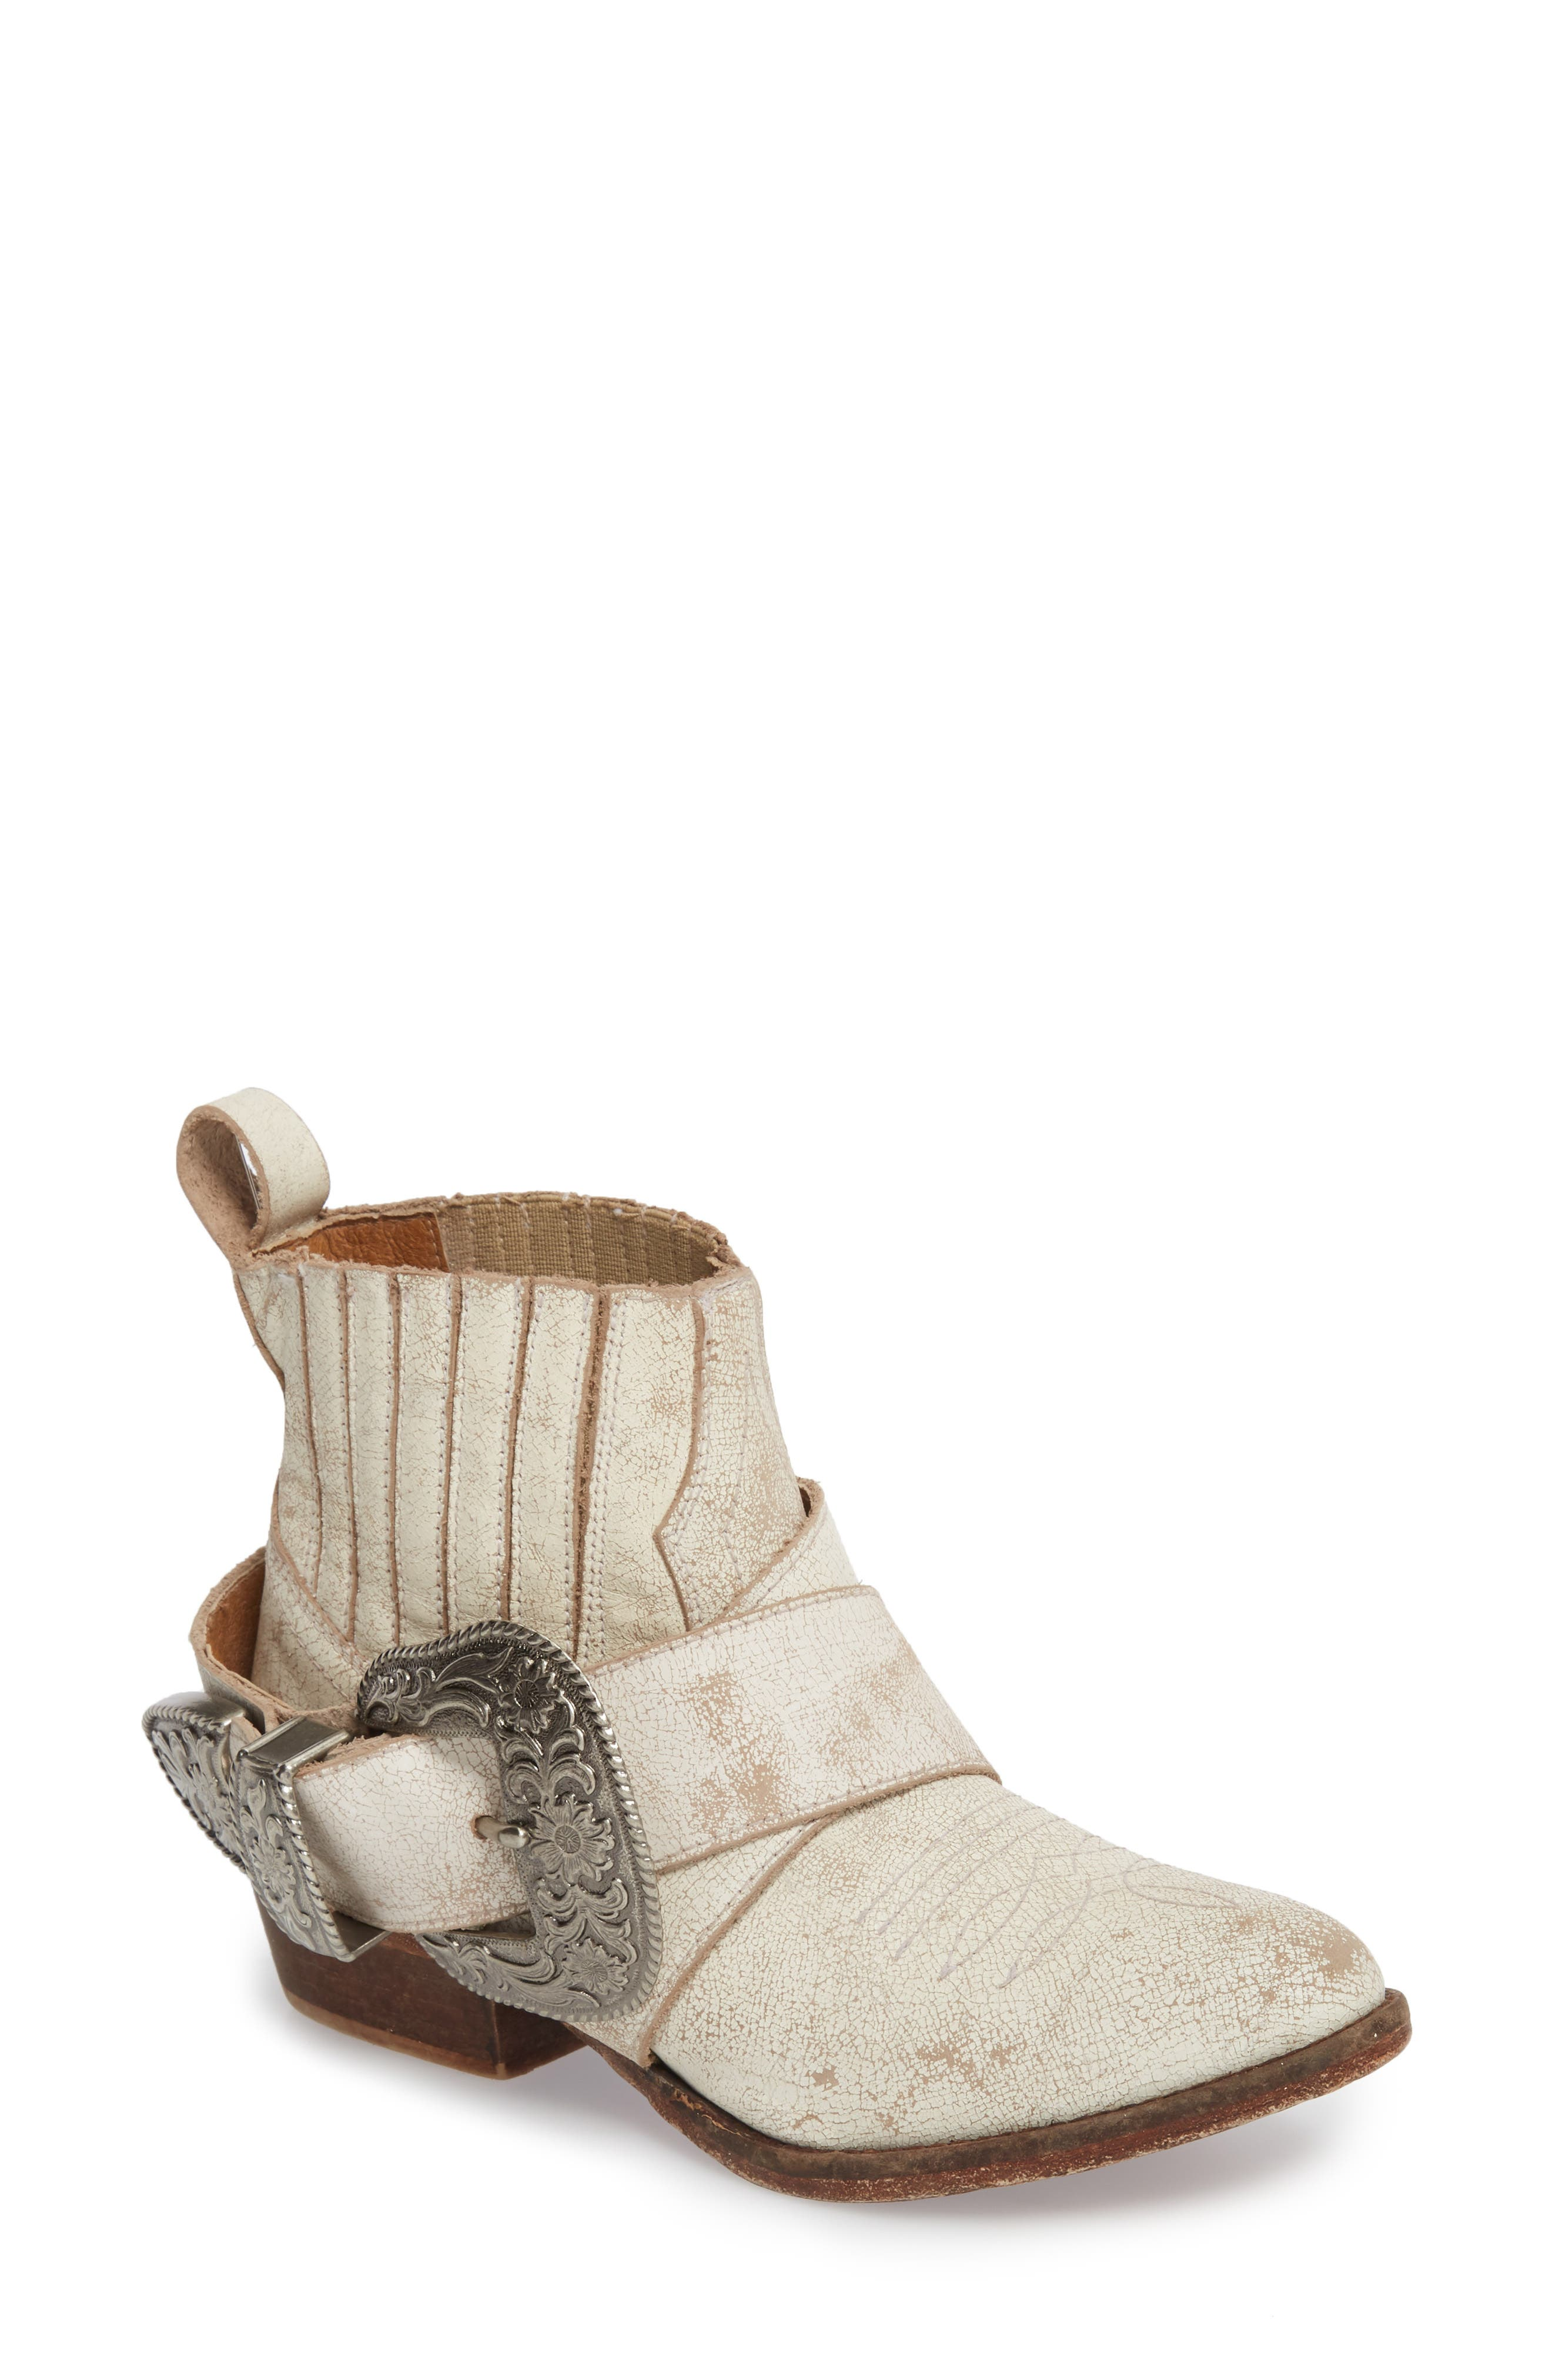 Western Biker Bootie,                             Main thumbnail 1, color,                             WHITE LEATHER